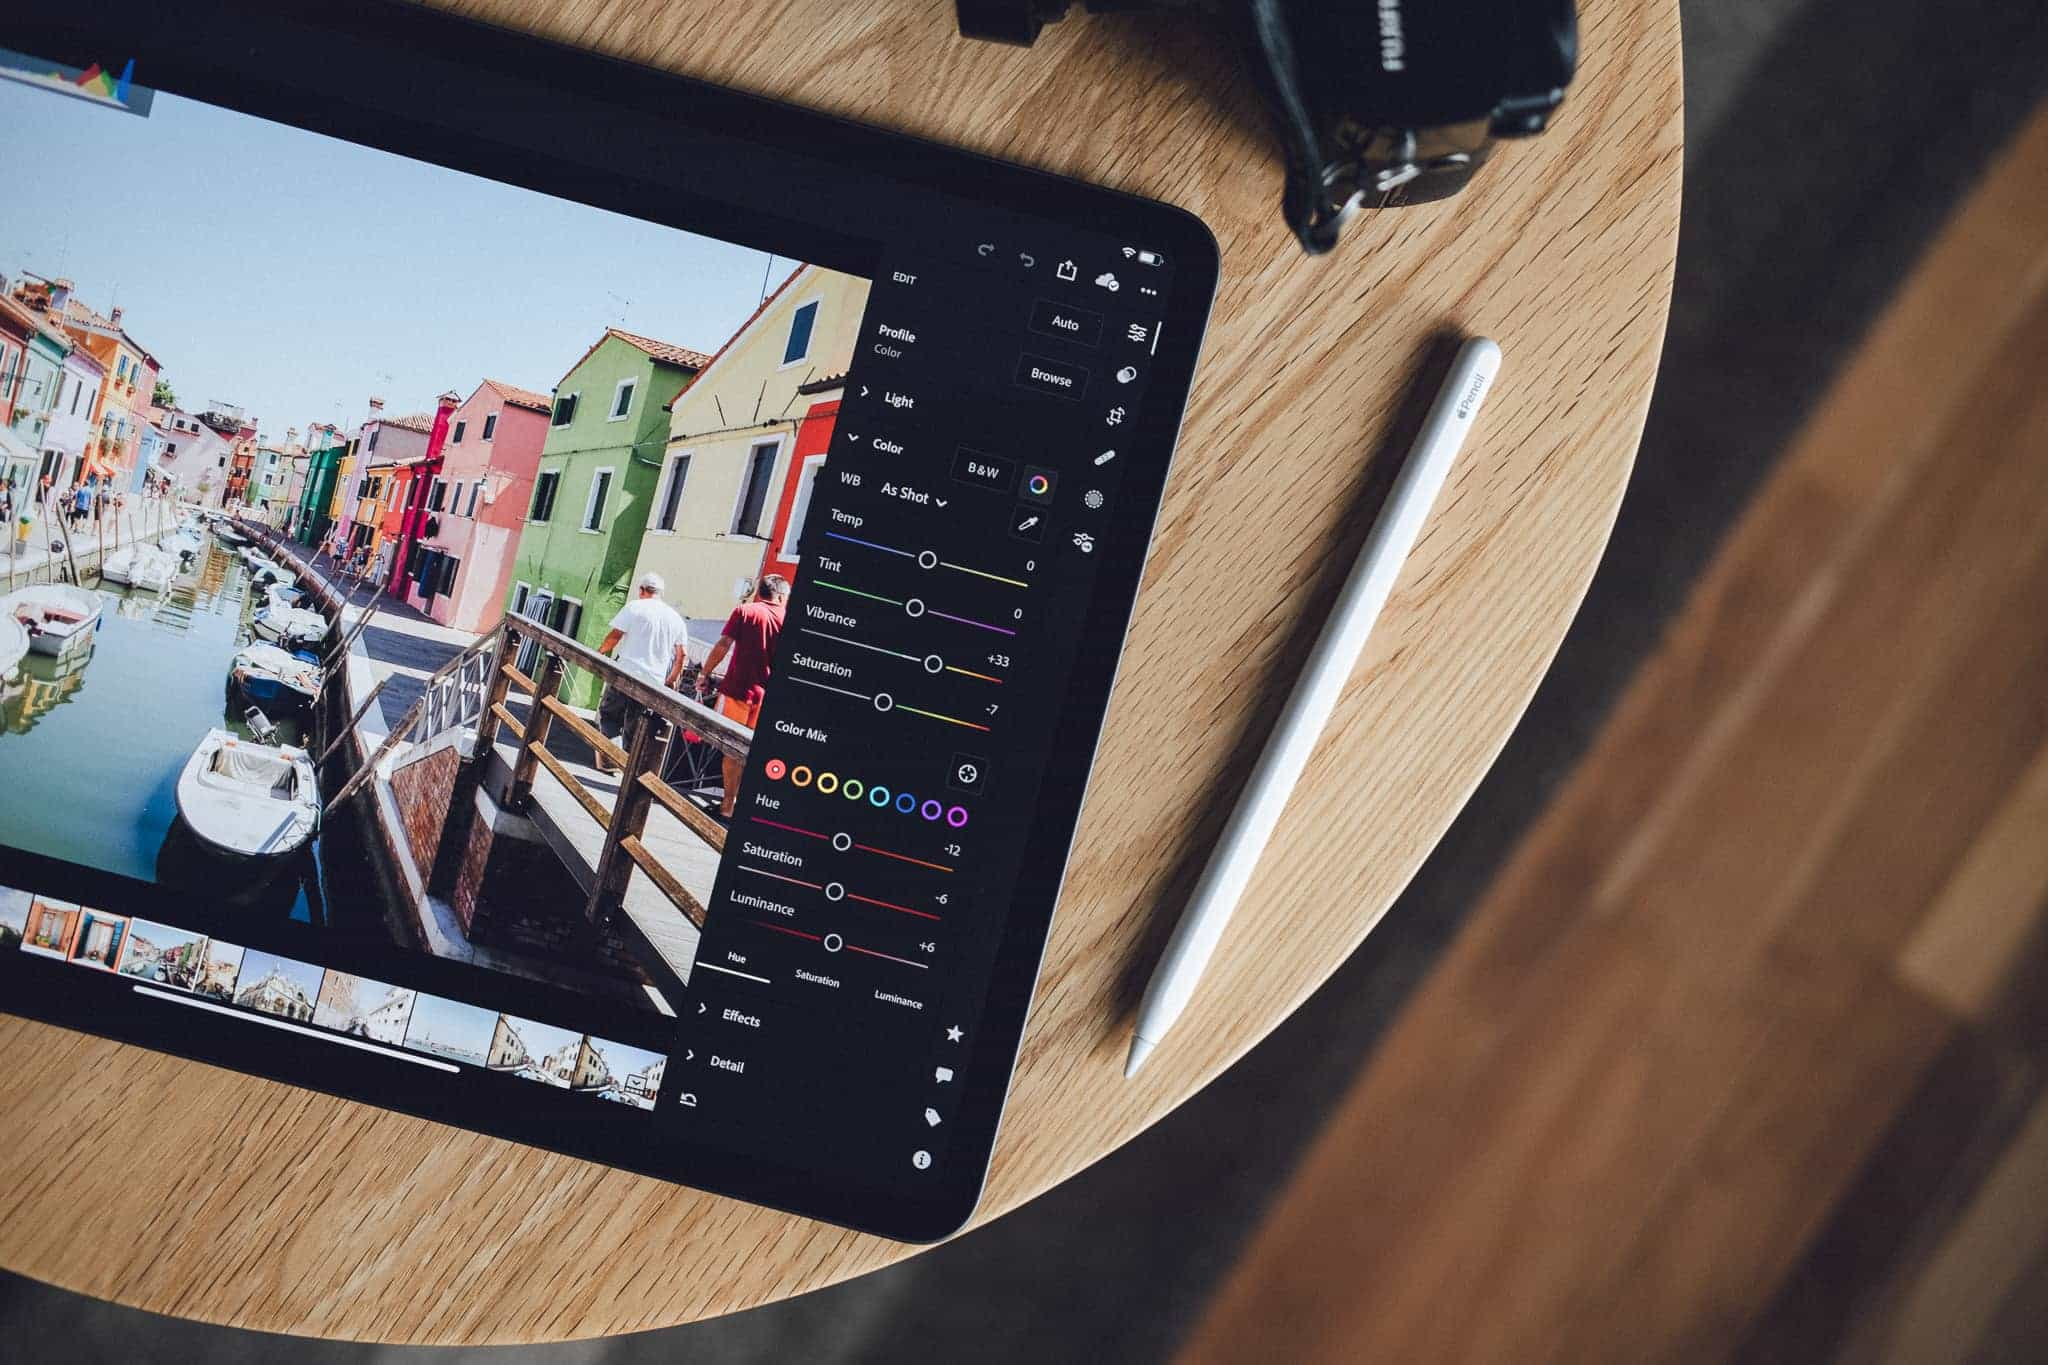 The Best App for Editing Photos on the iPad The Sweet Setup